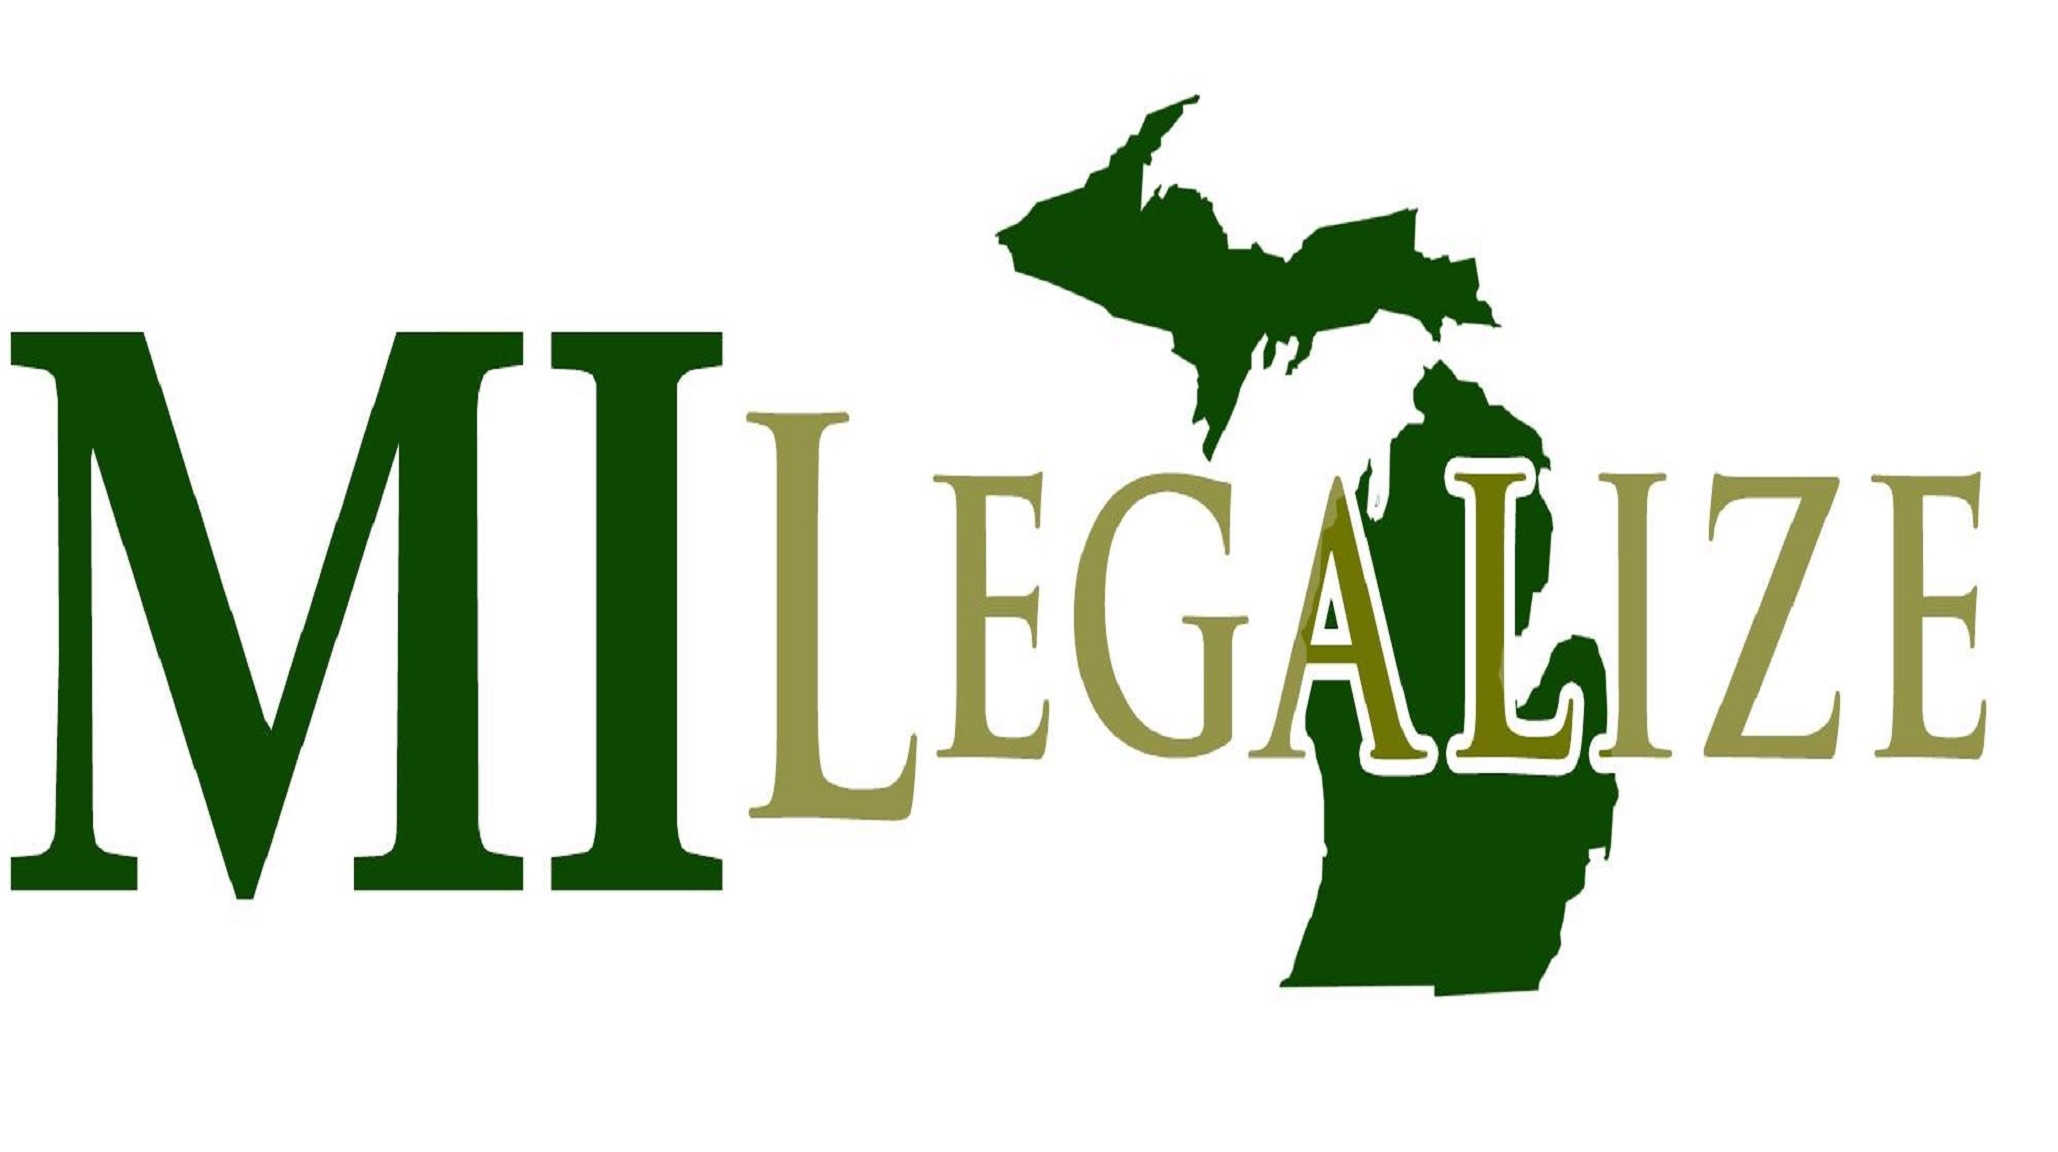 Michigan: Over 350,000 Signatures Submitted on Initiative to Legalize Cannabis